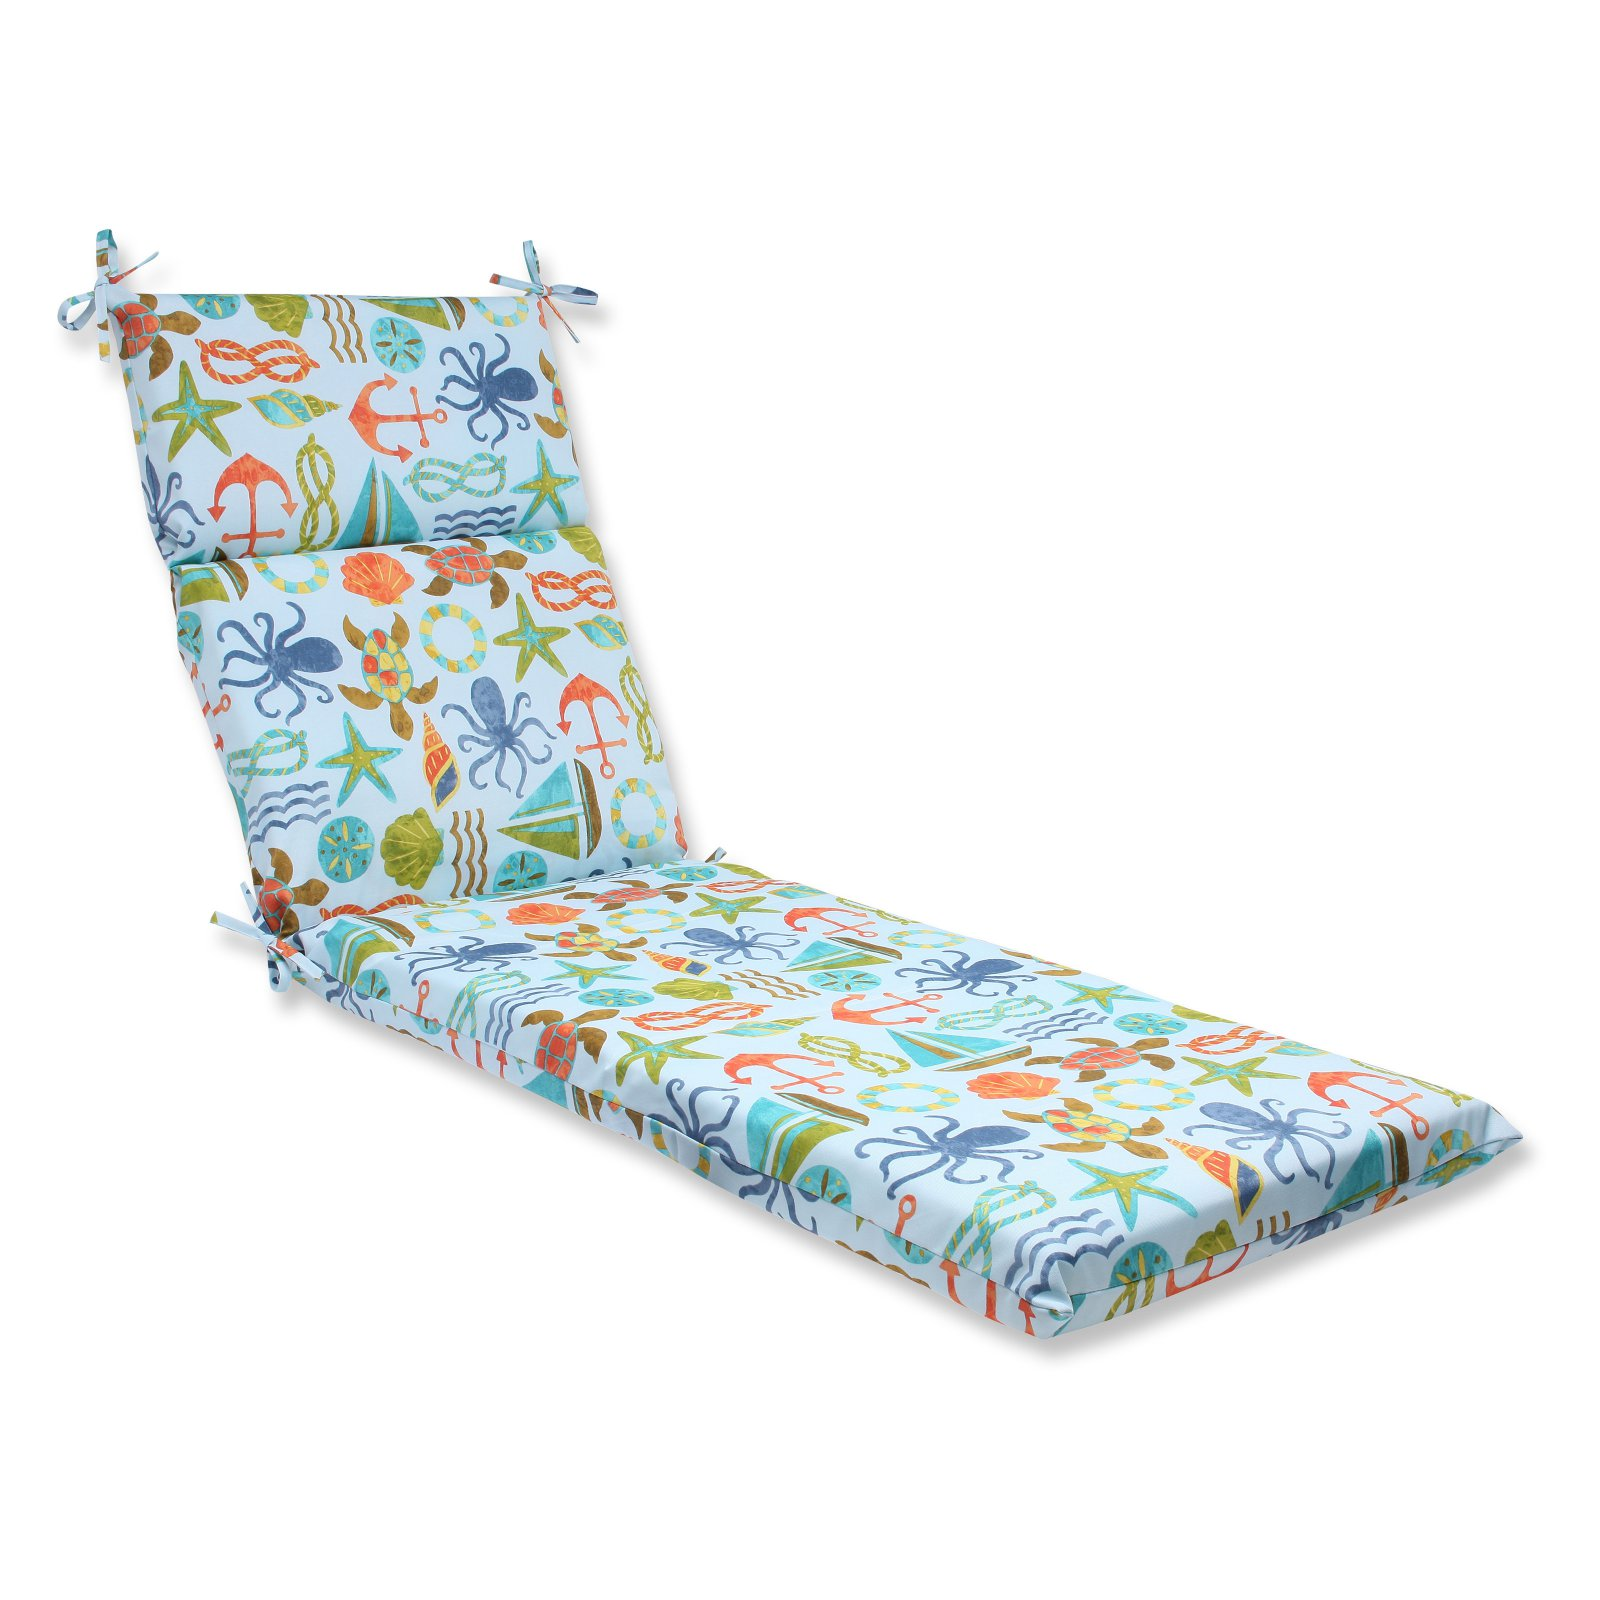 Pillow Perfect Outdoor  Indoor Seapoint Neptune Chaise Lounge Cushion by Pillow Perfect